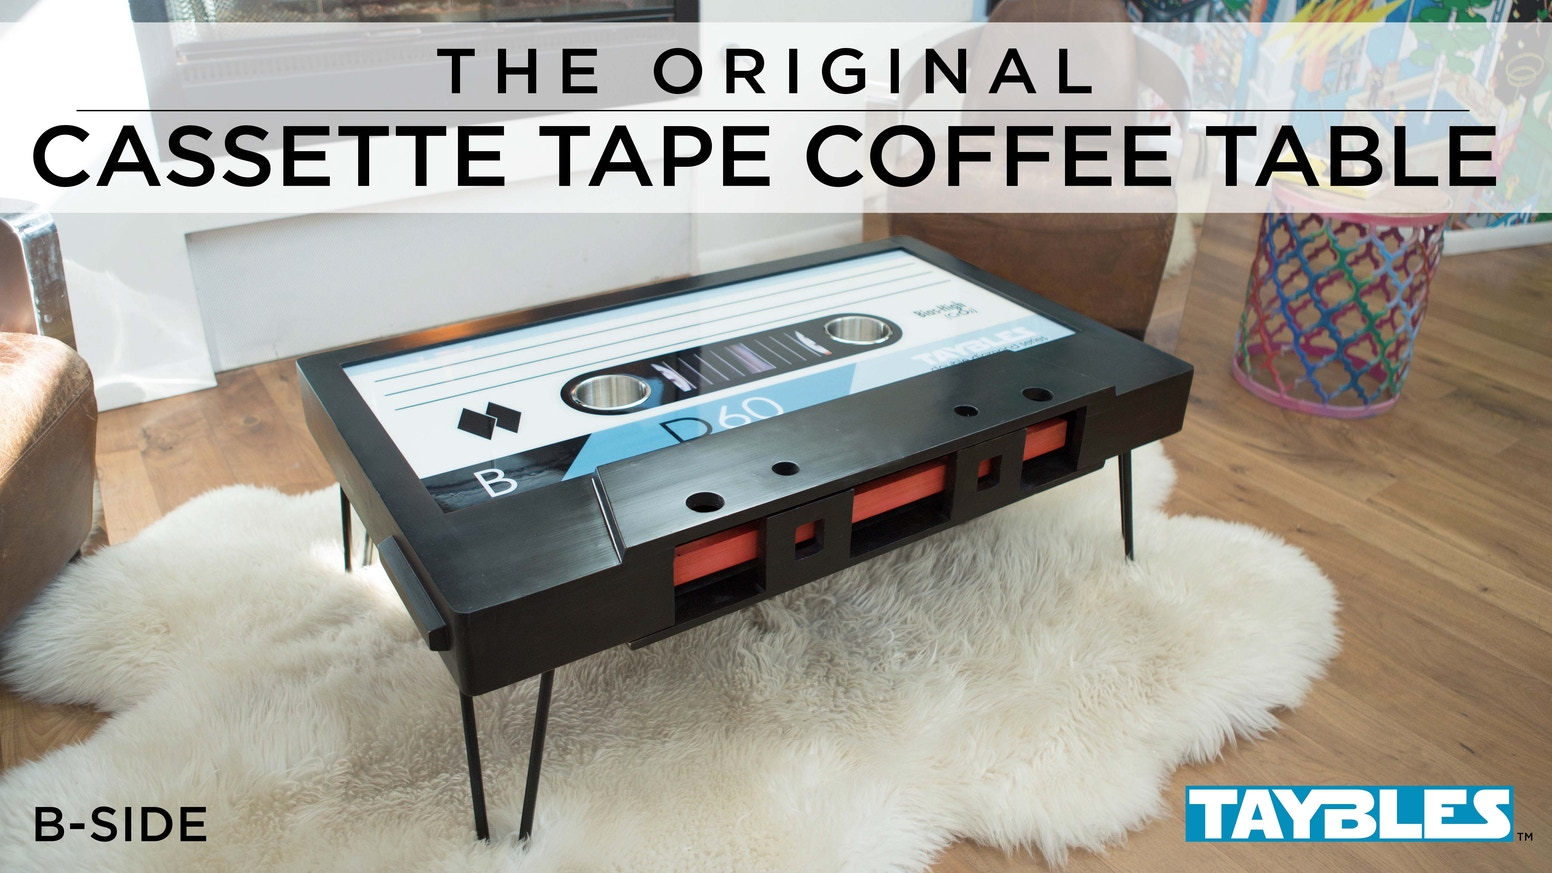 Modern Design Just Got a Retro Look! The Cassette Tape Coffee Table is built to scale with a whiteboard top & hidden storage